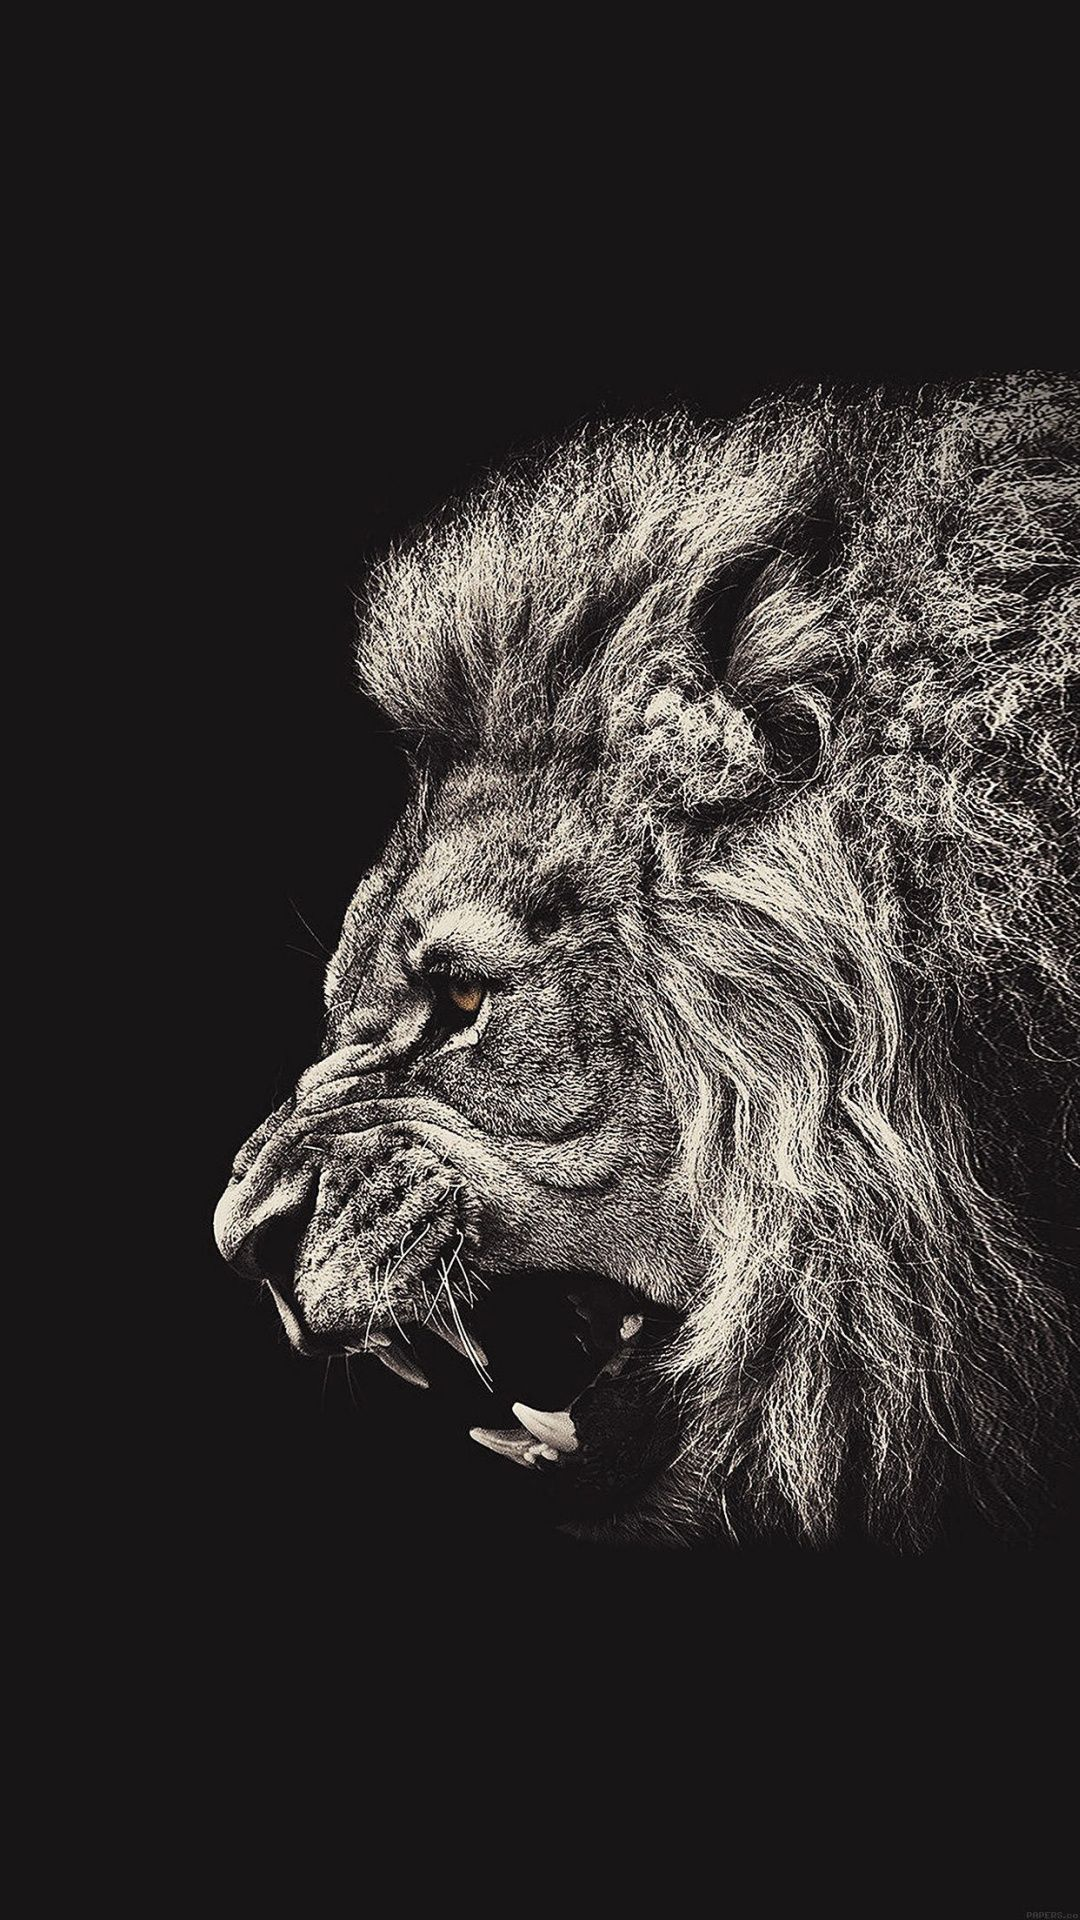 60 AMAZING ANIMAL IPHONE WALLPAPER FREE TO DOWNLOAD Lion